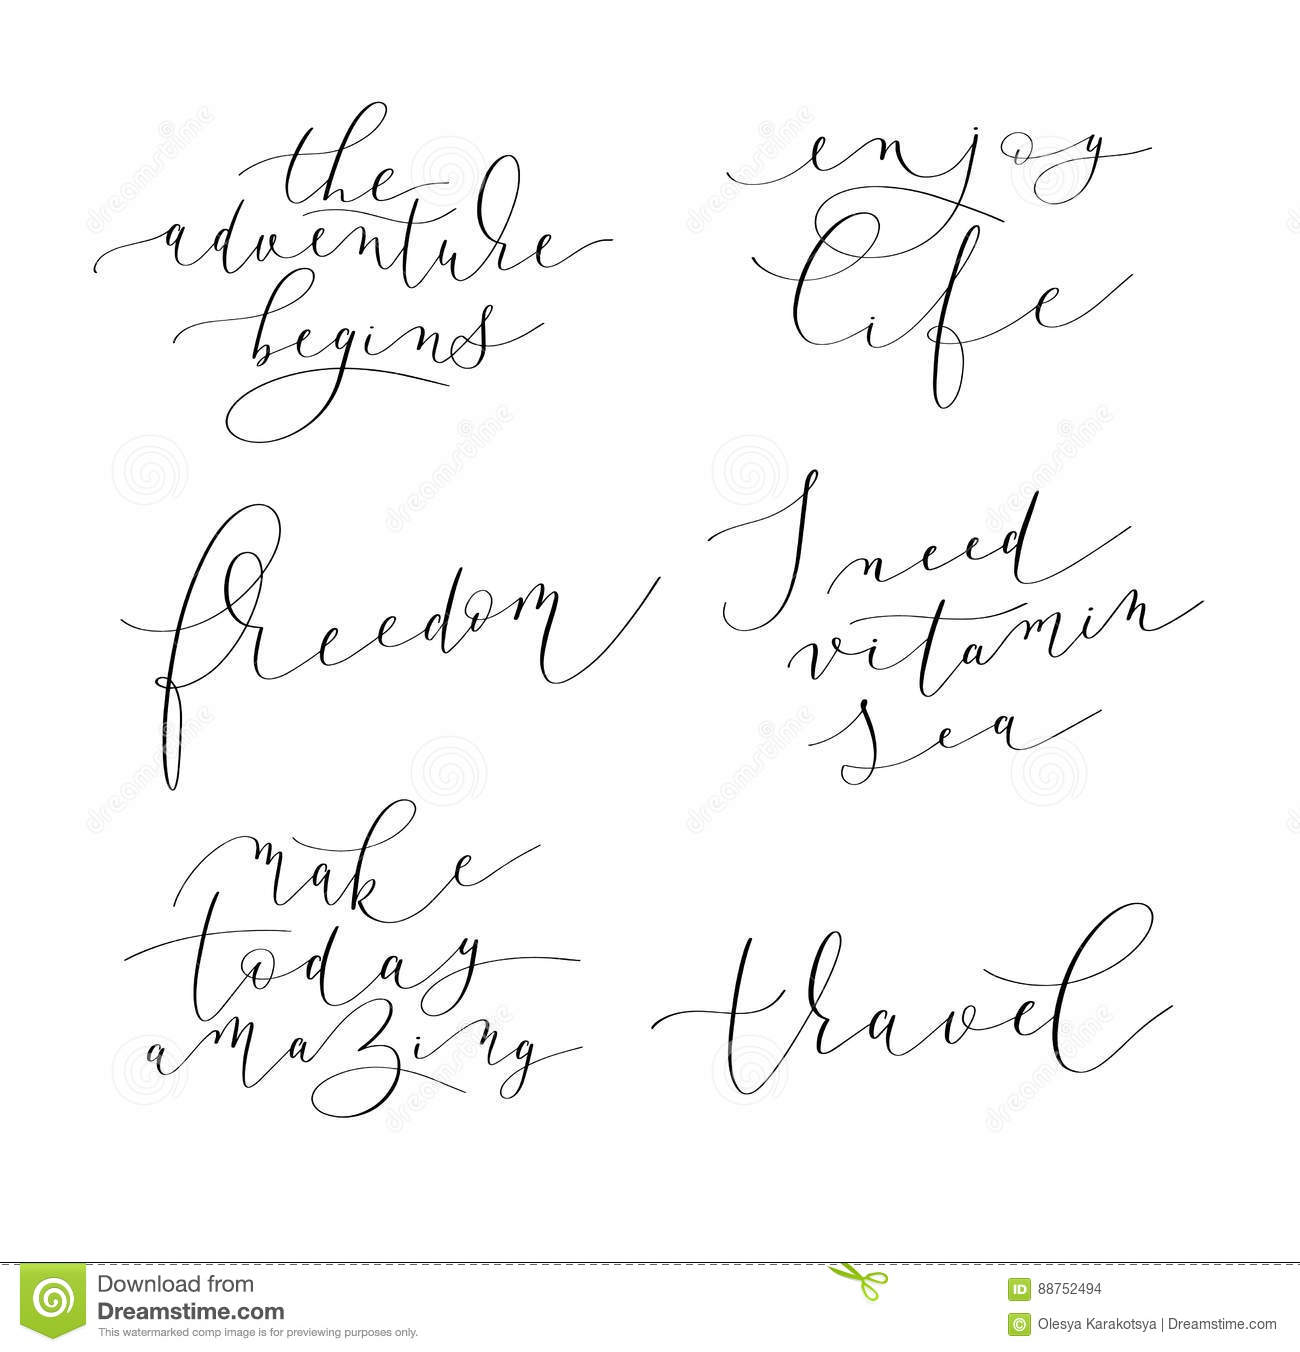 Positive Quotes On Life Set Of 6 Hand Written Lettering Positive Quotes About Life Stock